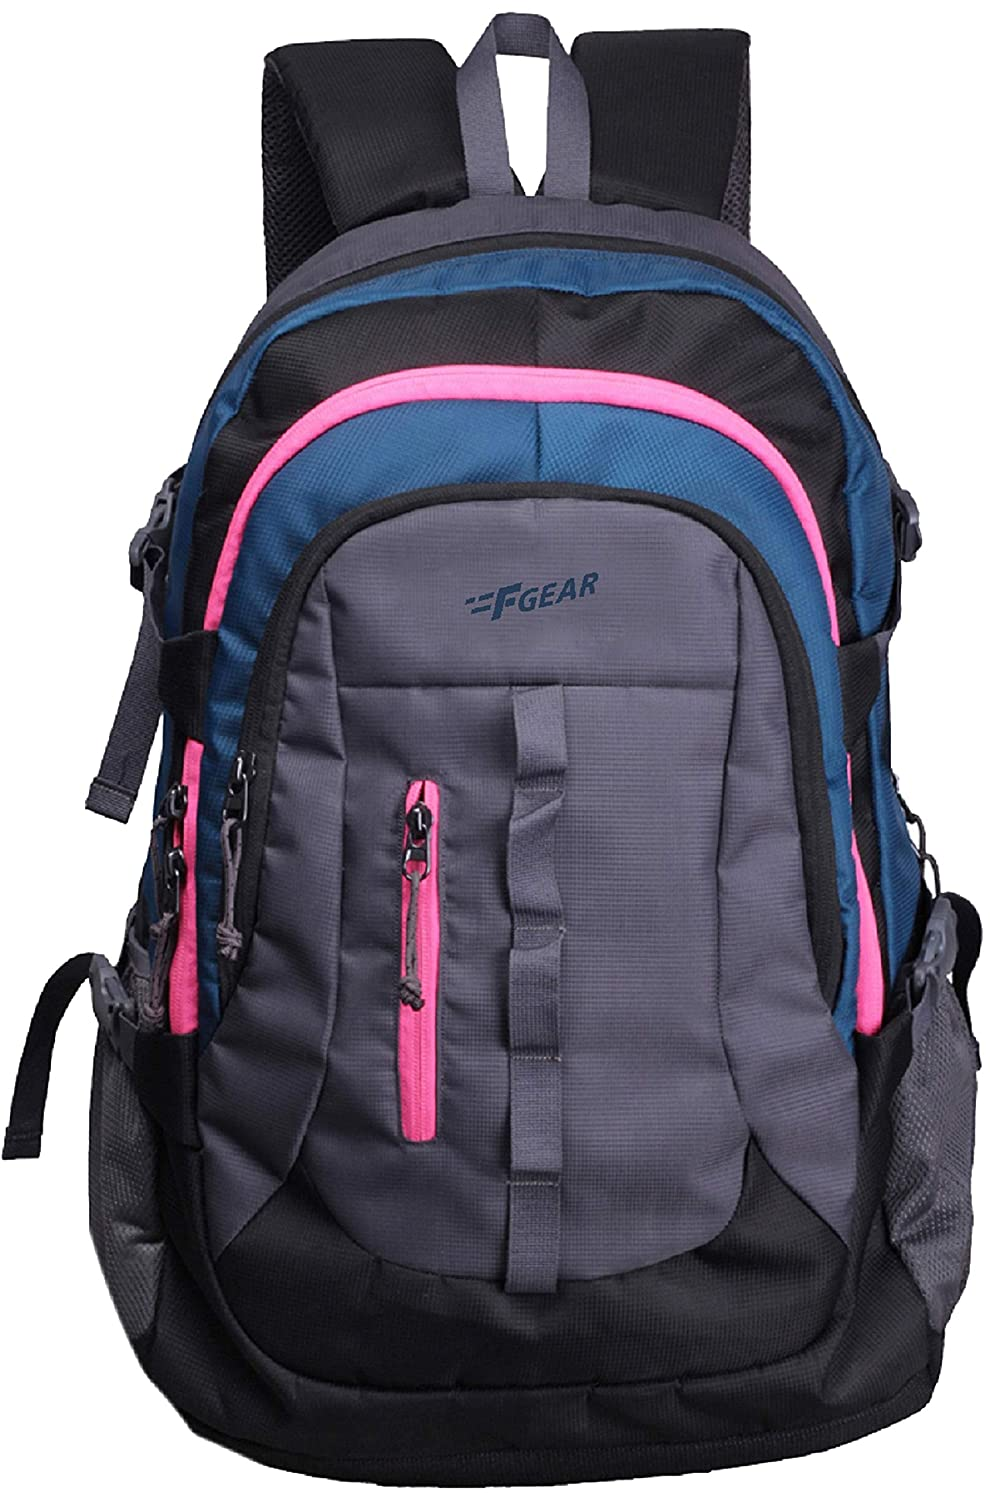 F Gear Defender 41 Ltrs Navy Blue, Pink Casual Backpack (2504)